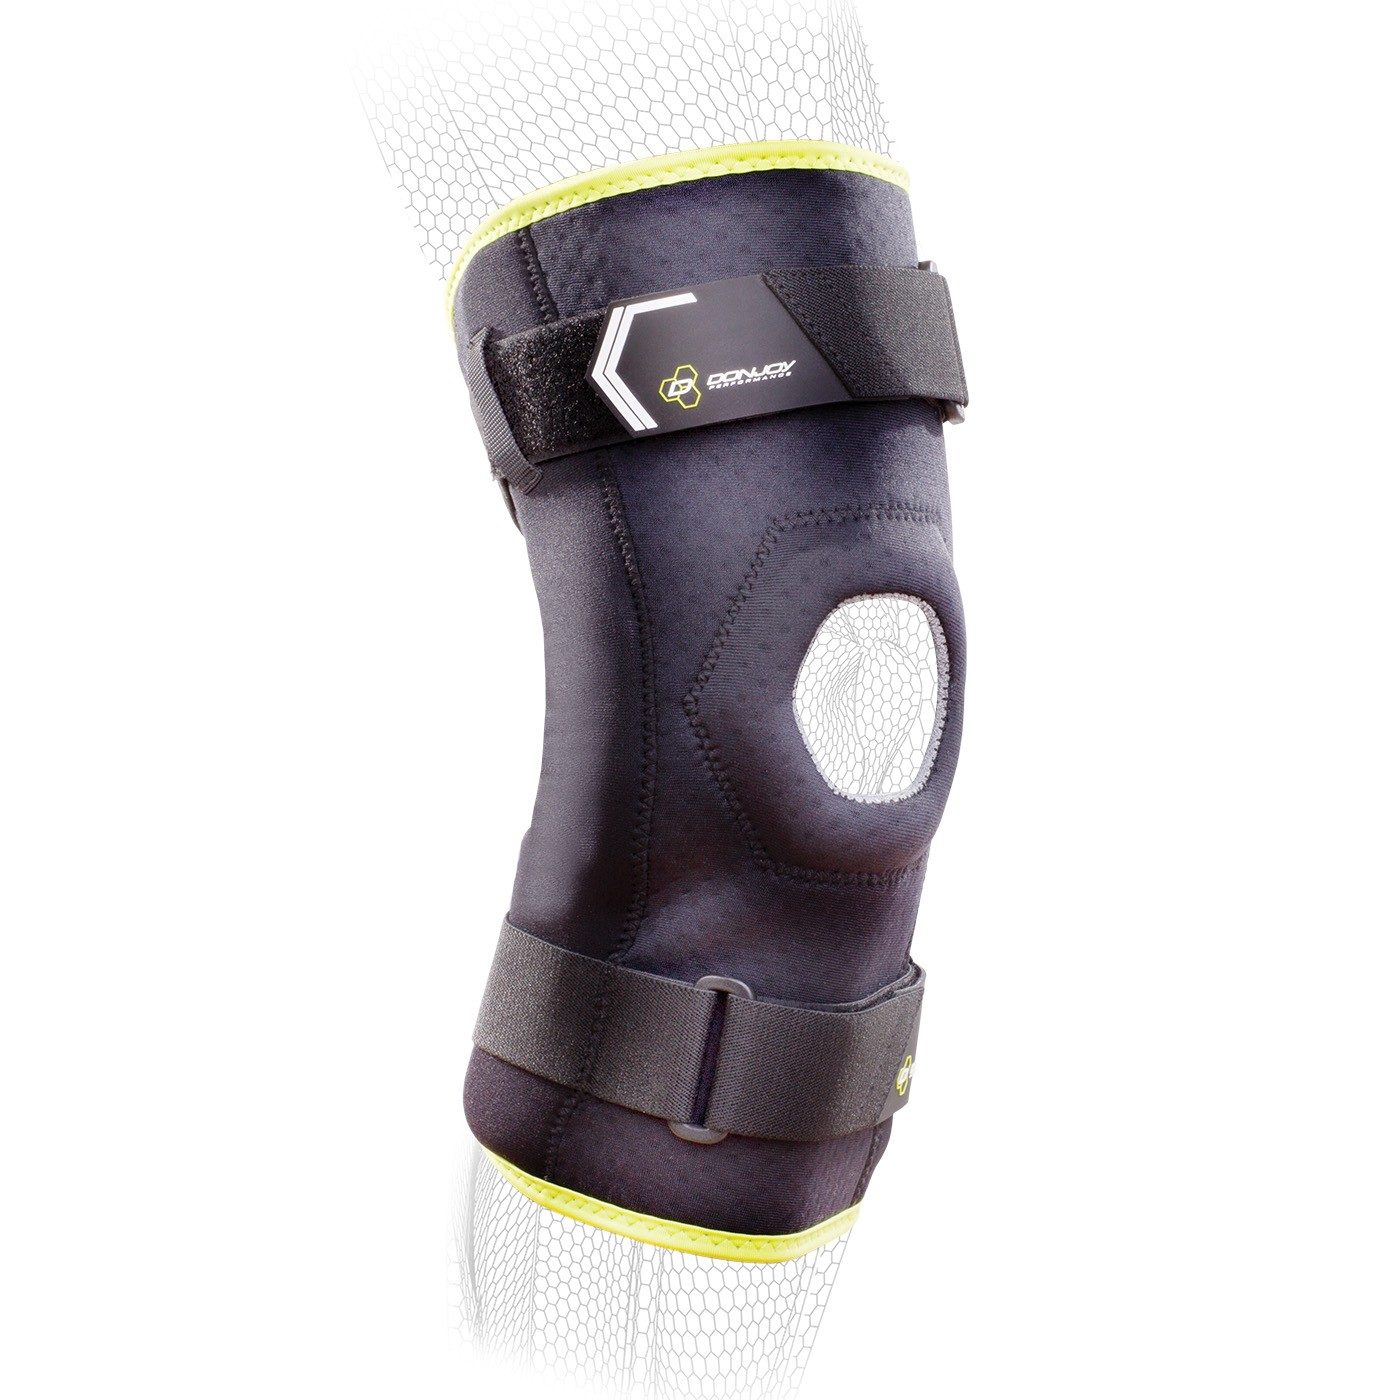 Donjoy Performance Bionic Comfort Hinged Knee Brace